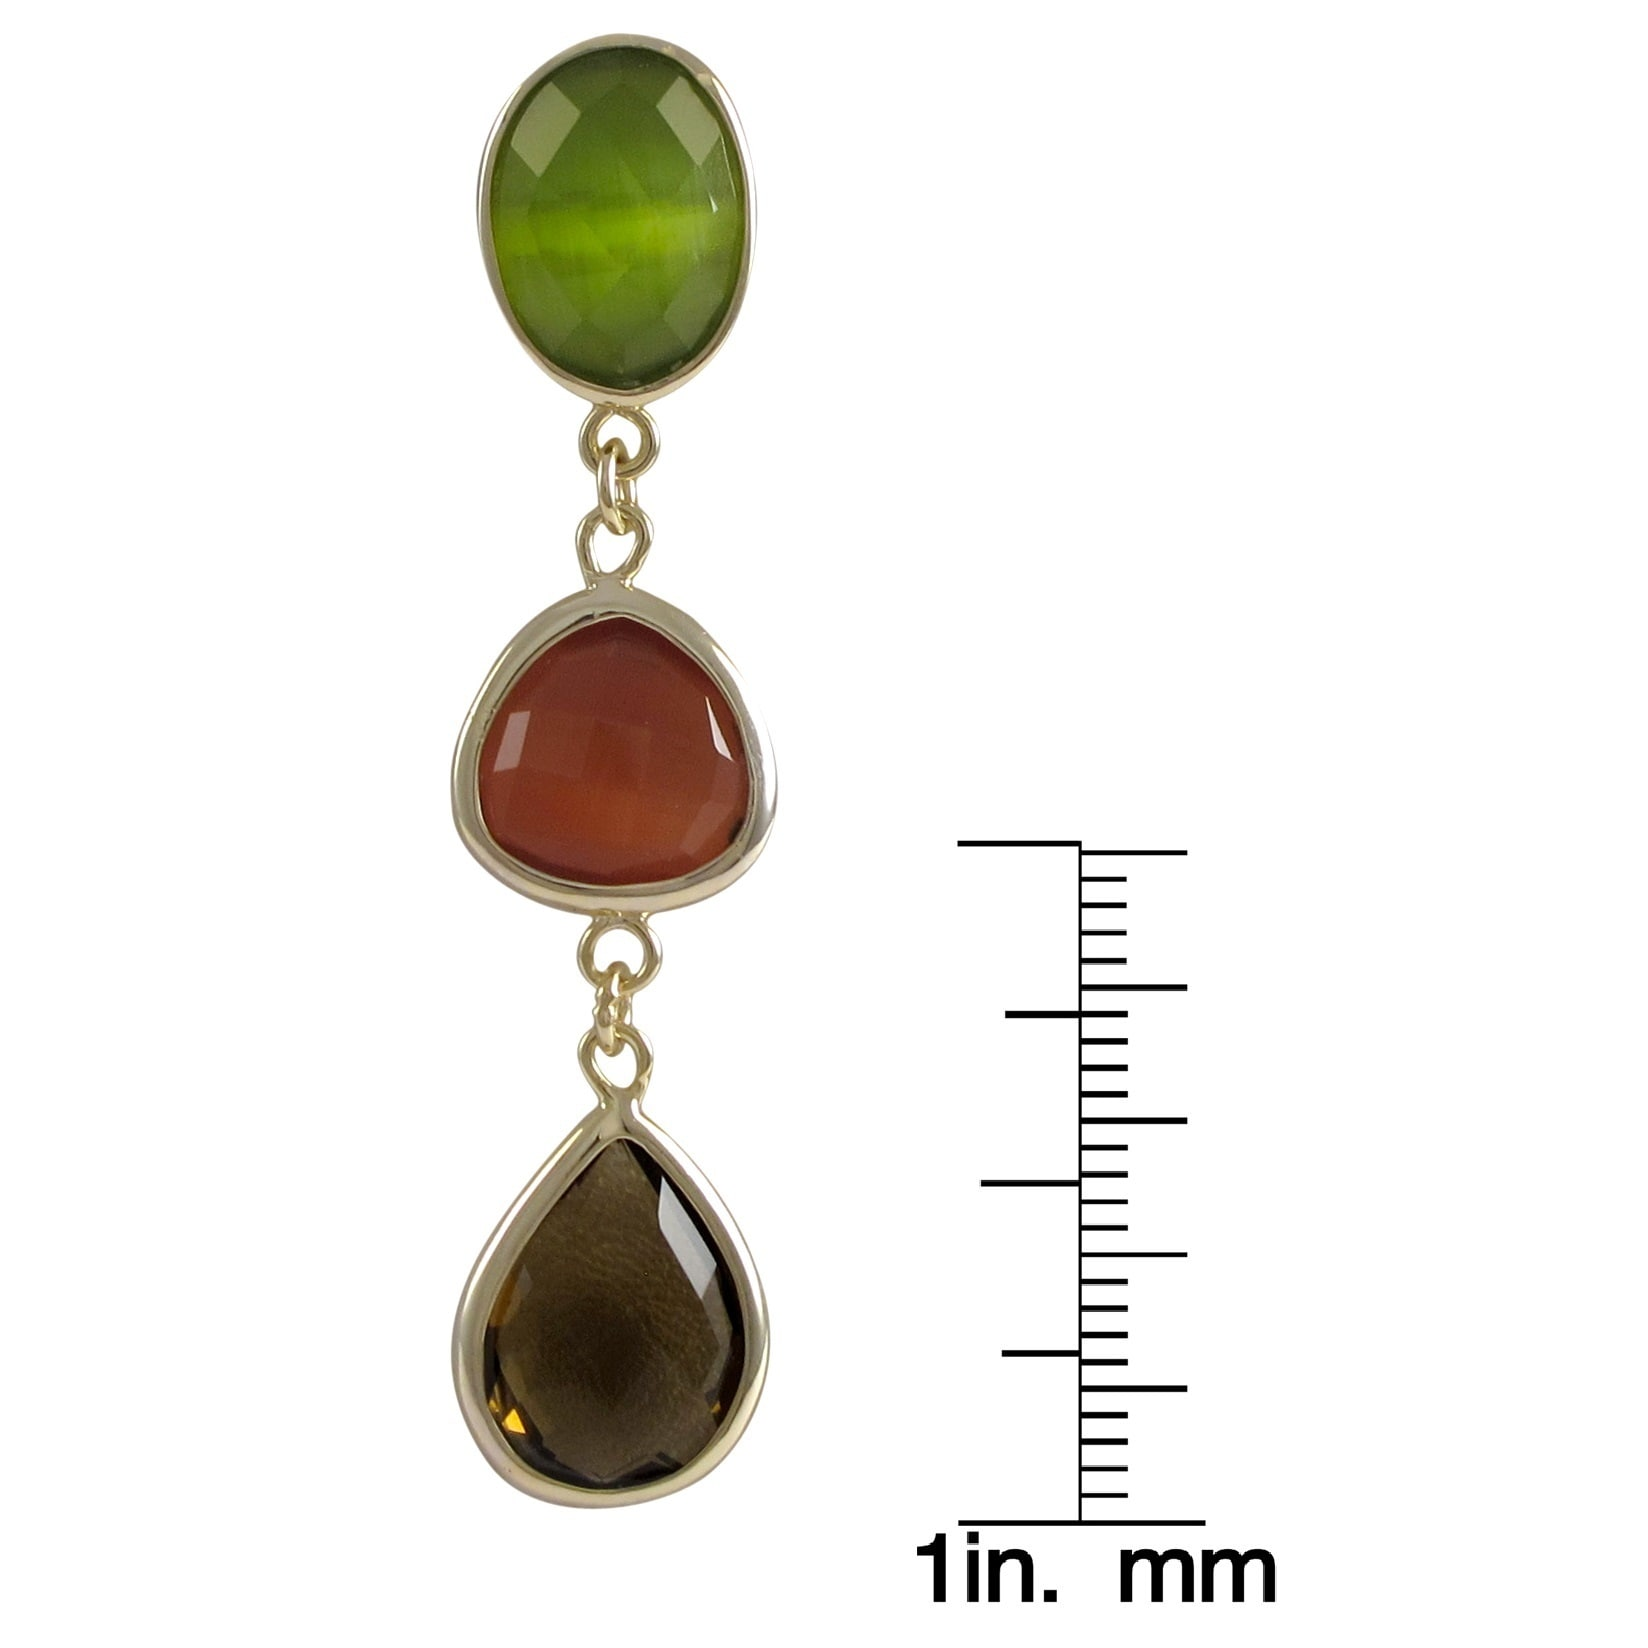 998358fc1e6b90 Shop Luxiro Goldtone Sterling Silver Multi-colored Graduated Semi-precious  Gemstone Dangle Earrings - On Sale - Free Shipping Today - Overstock -  9930989